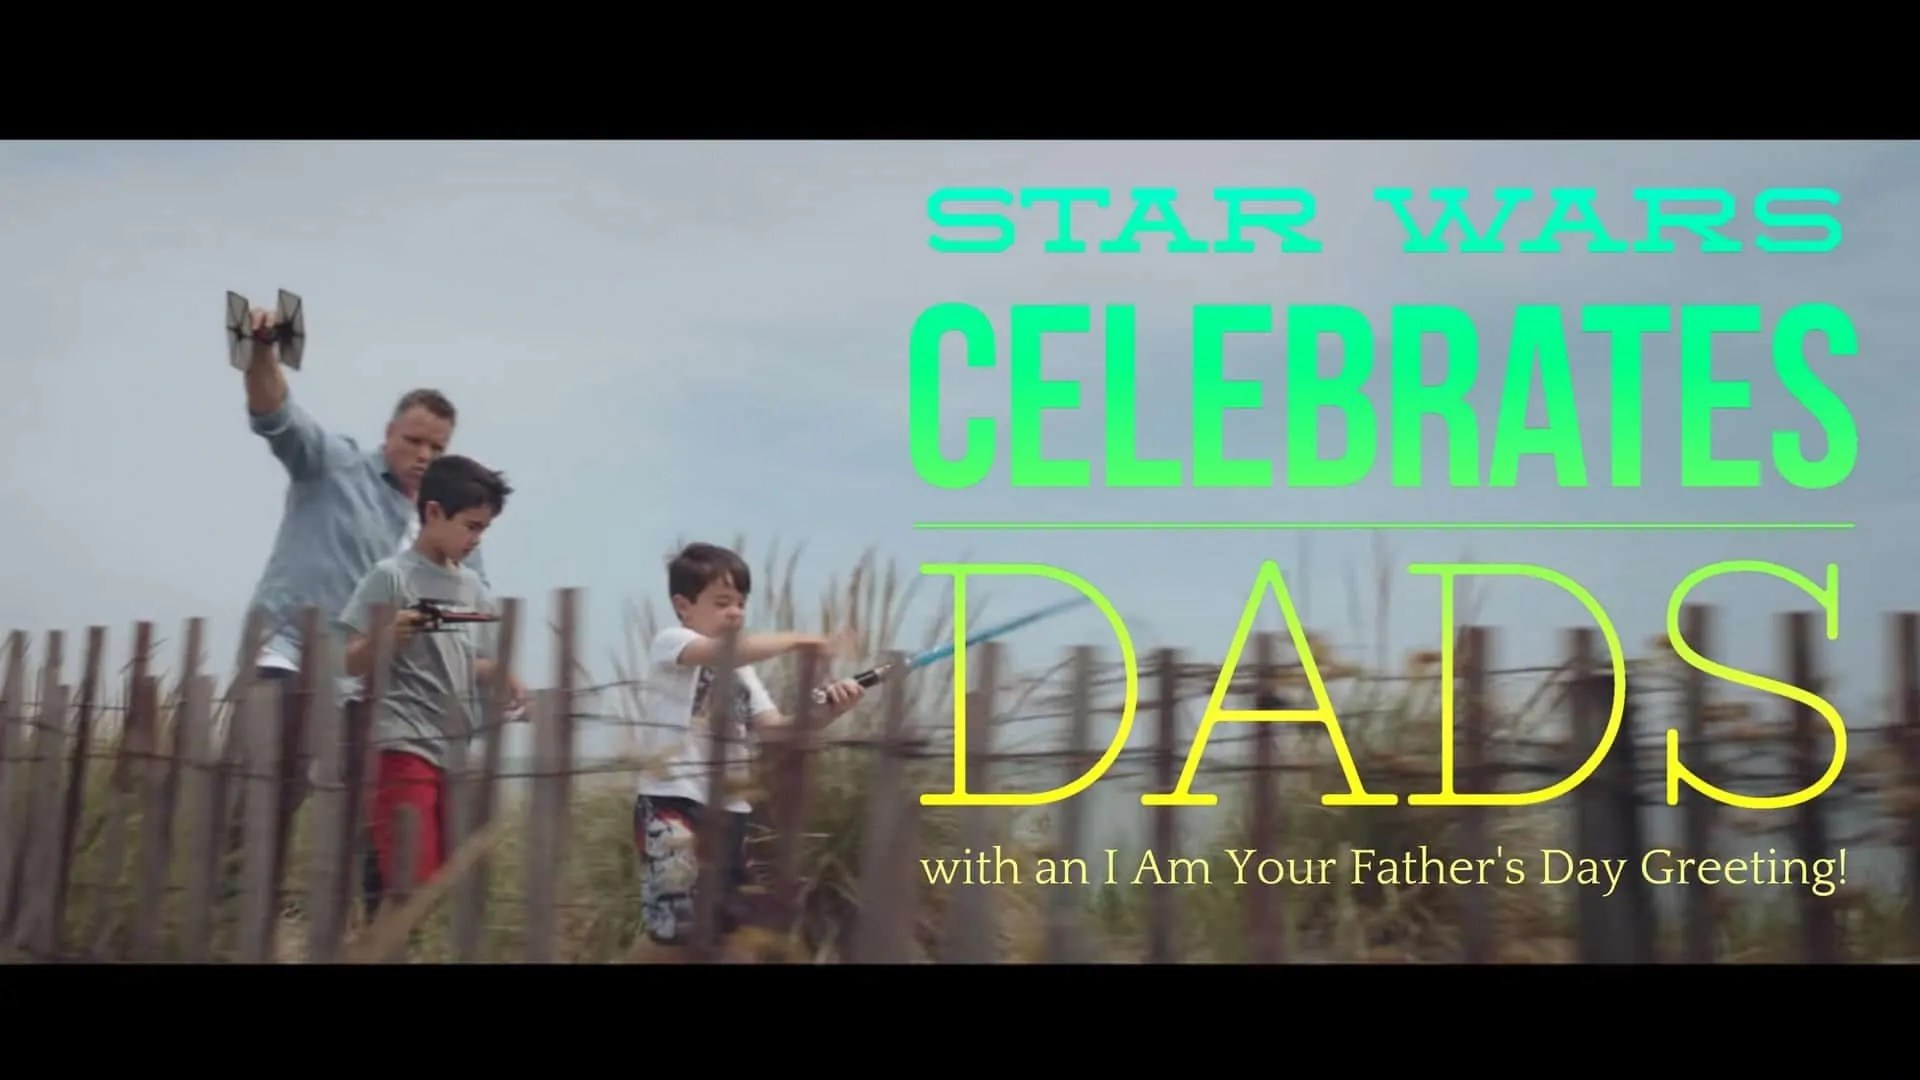 Star Wars Celebrates Dads with an I Am Your Father's Day Greeting (Featured Image)